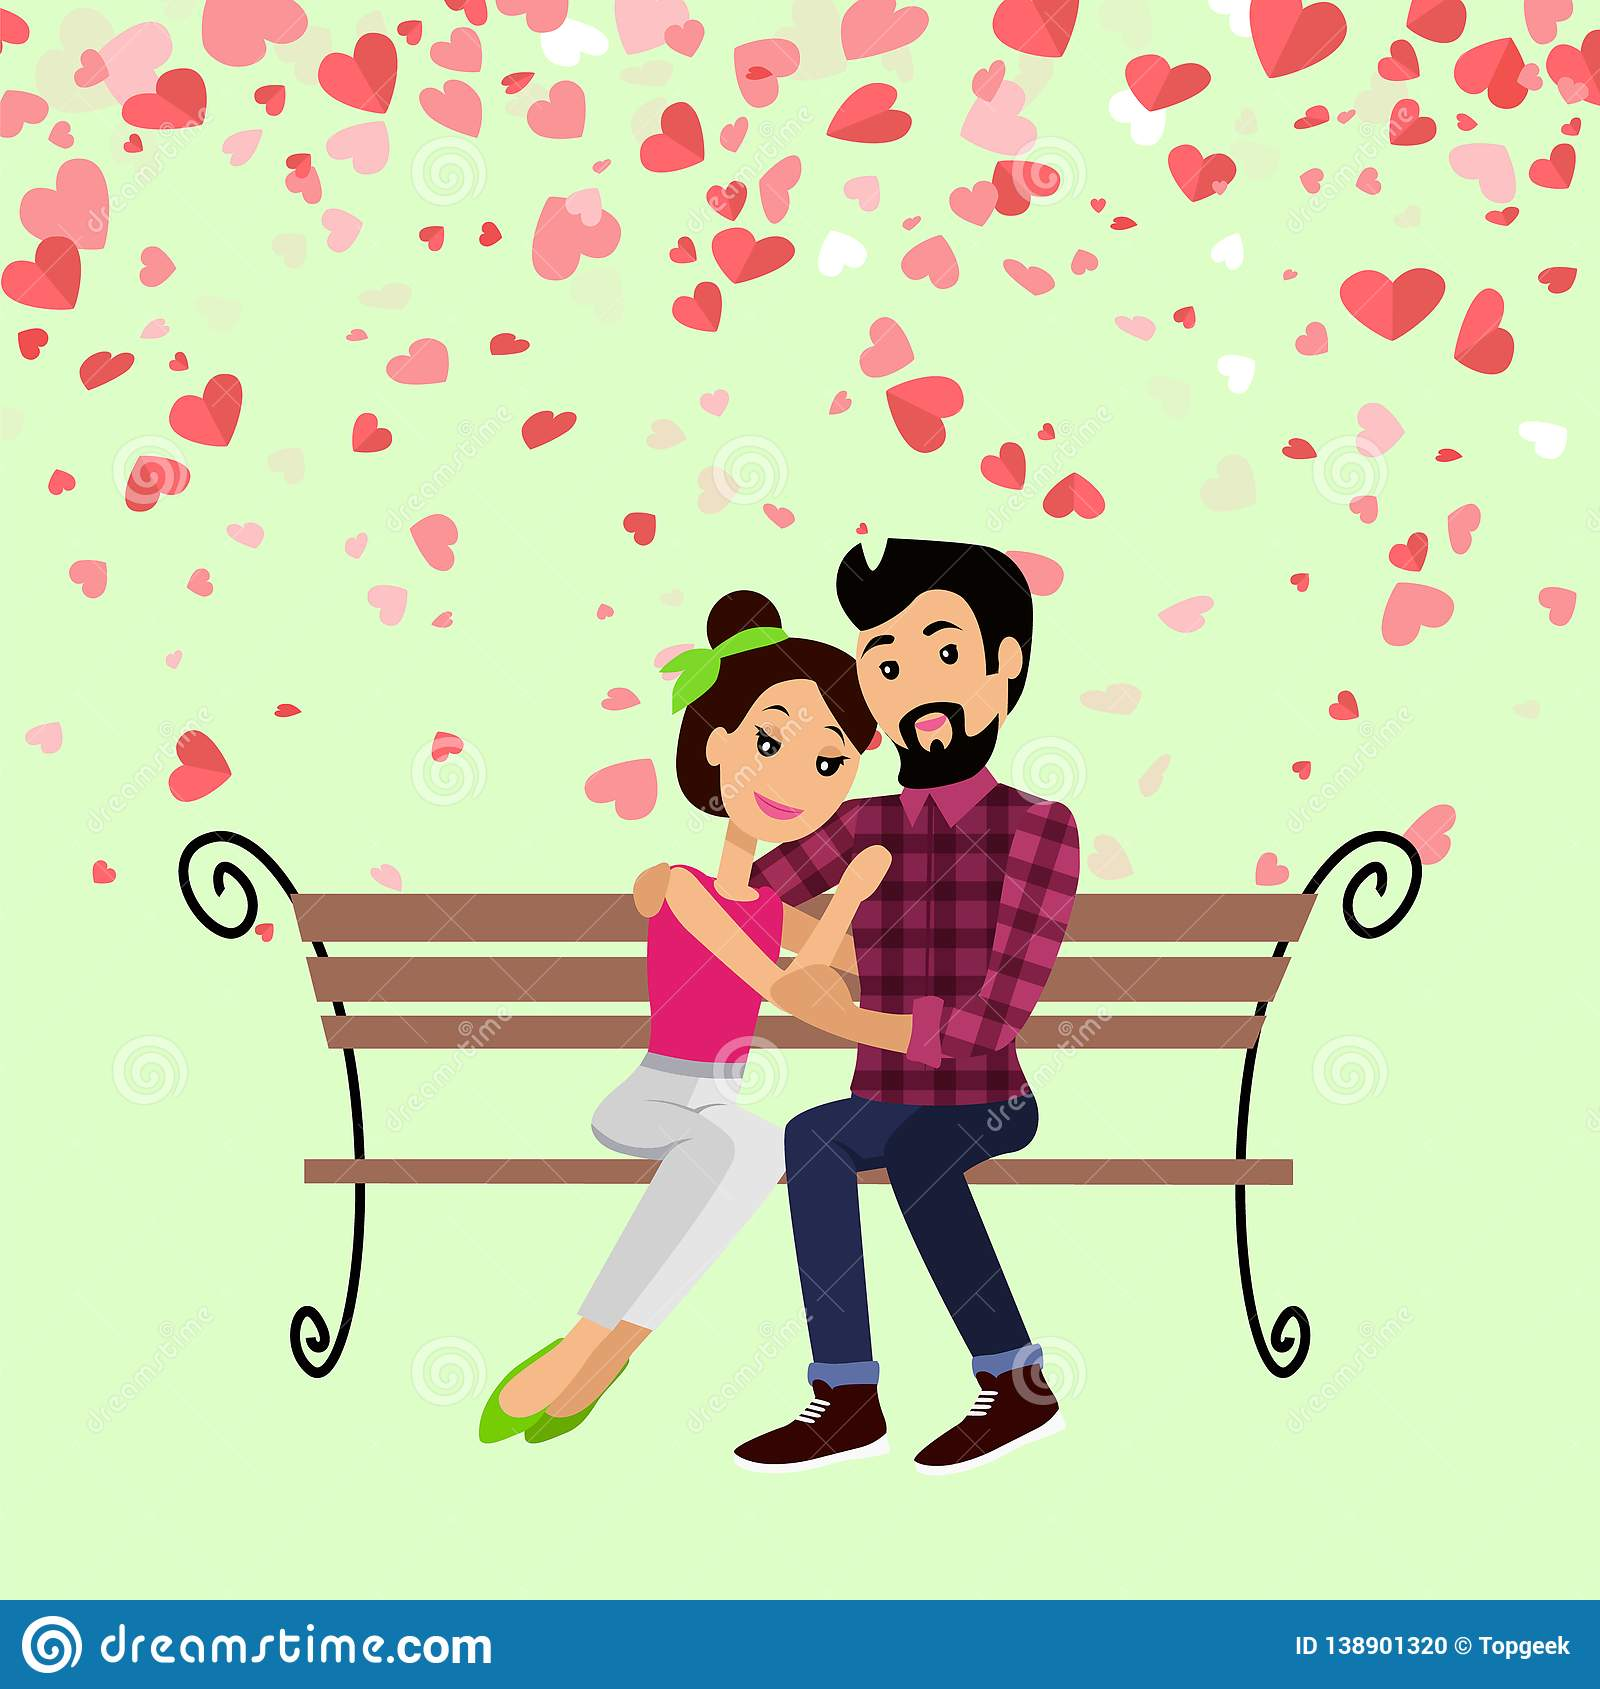 Valentine Day, Hugging Couple on Bench Vector